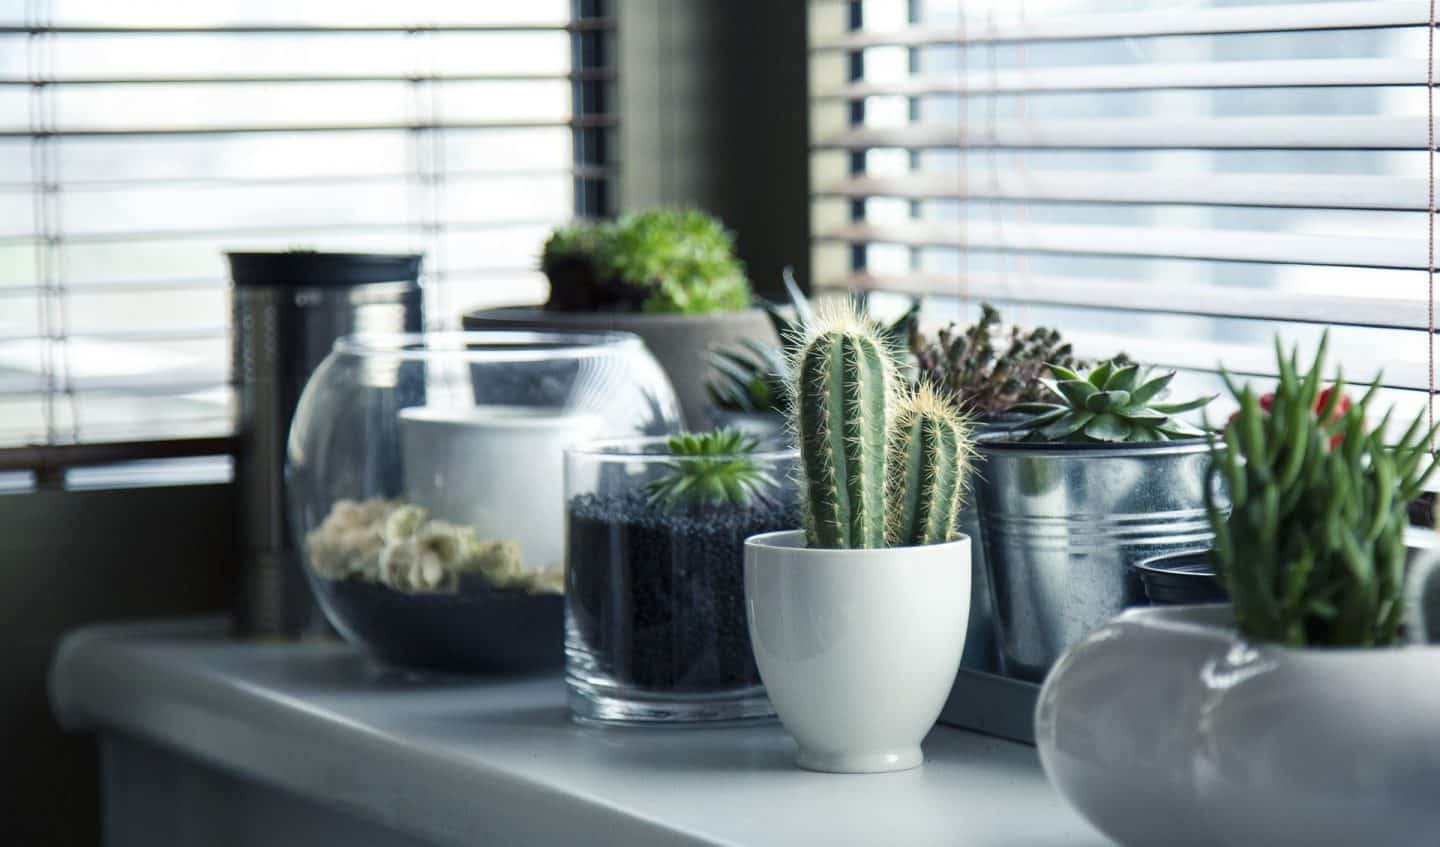 Collection of house plants on a window ledge